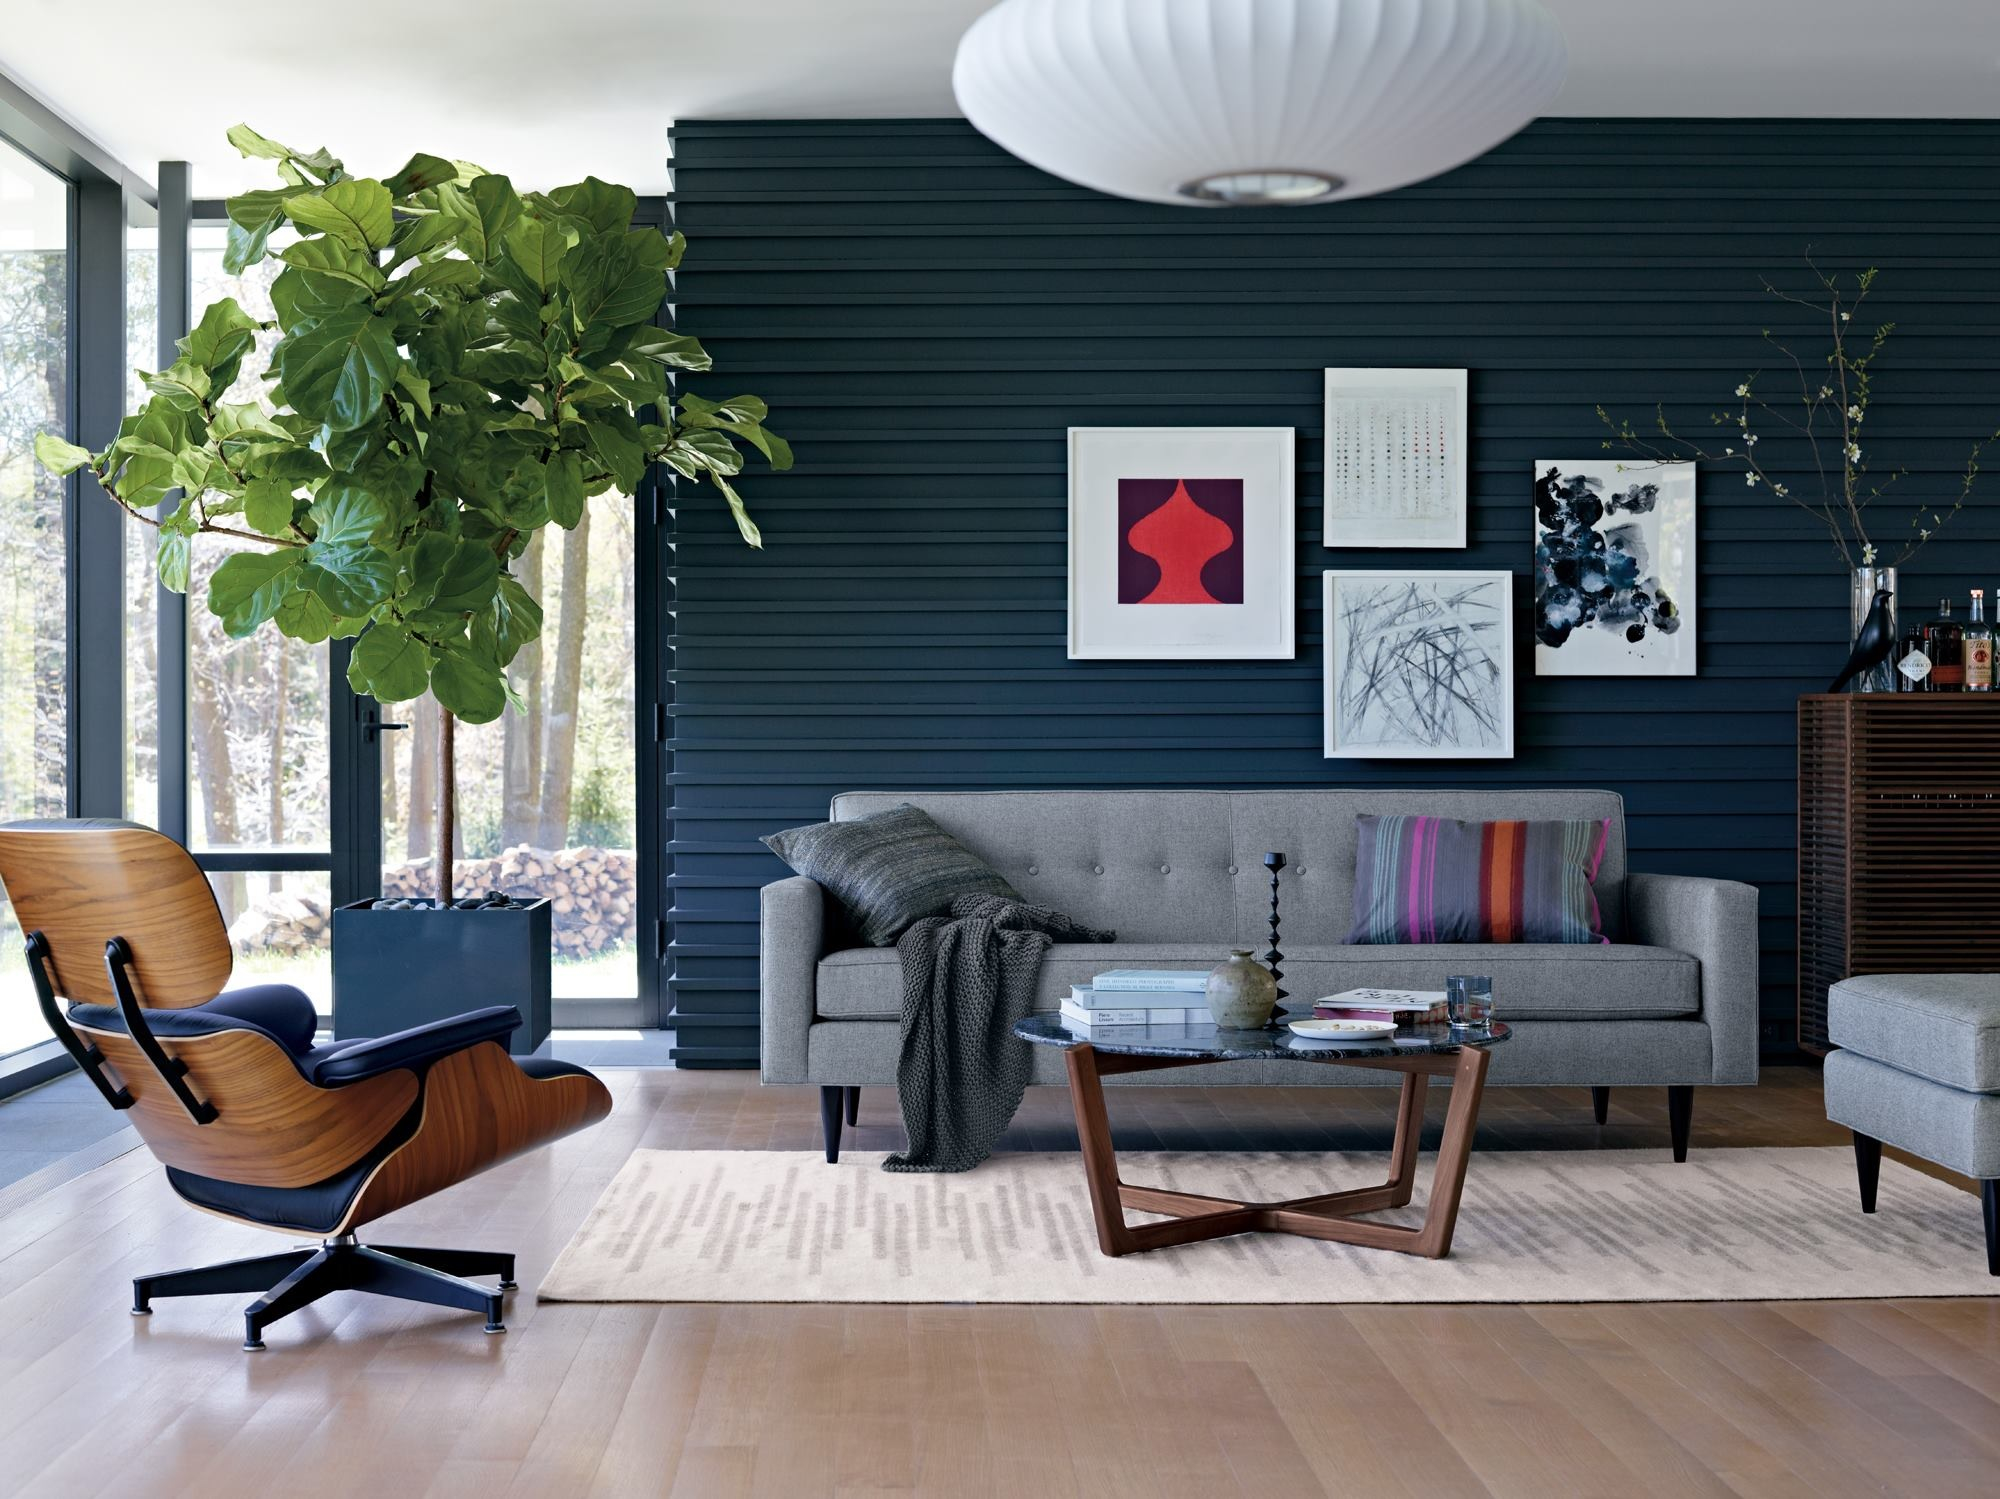 Eames Lounge Chair Living Room meet manhattan home design the company that is making the